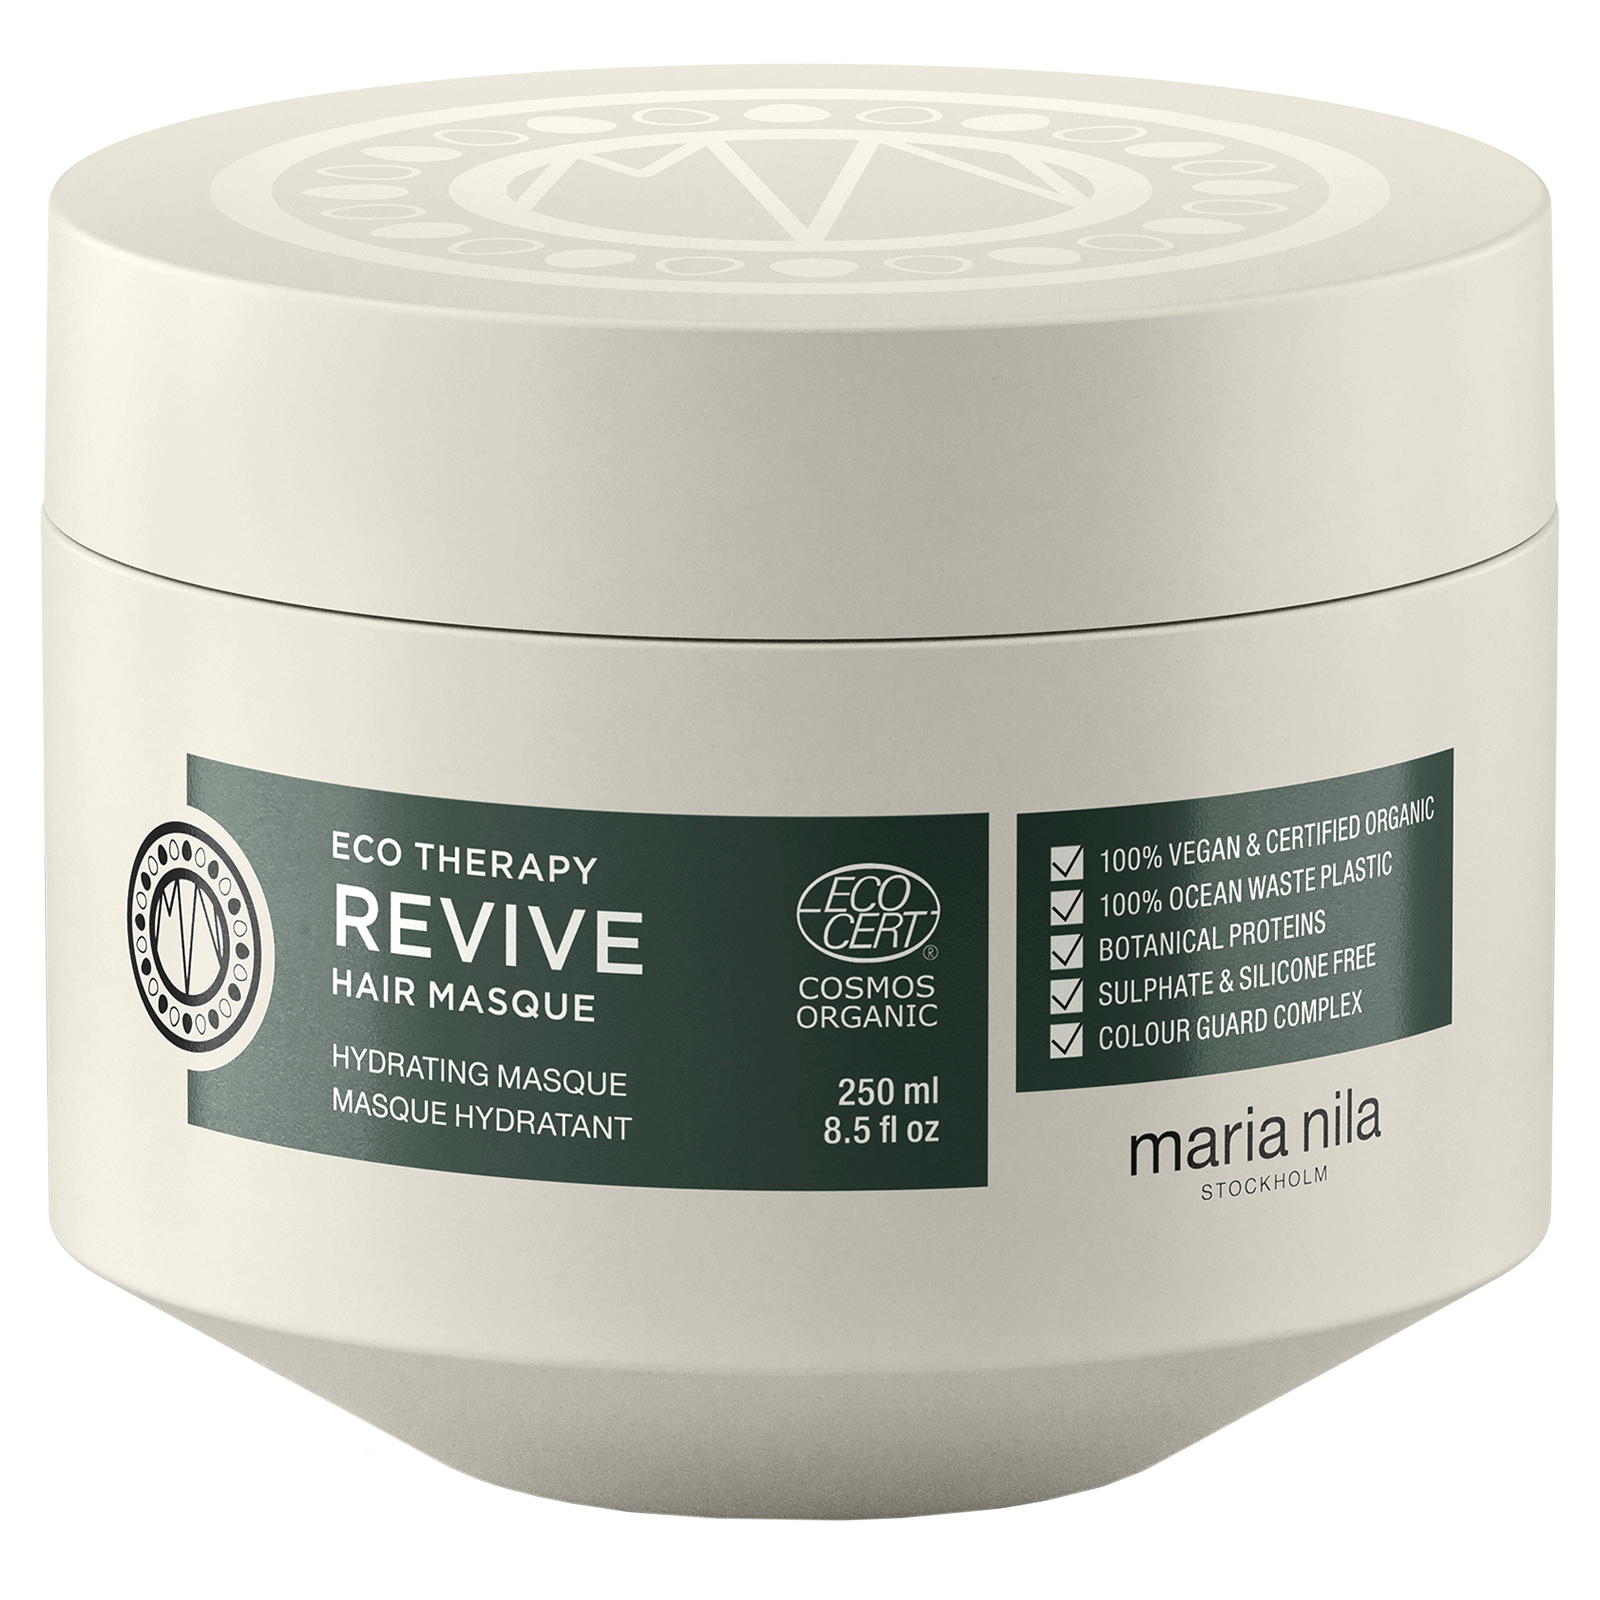 Eco Therapy Revive Masque